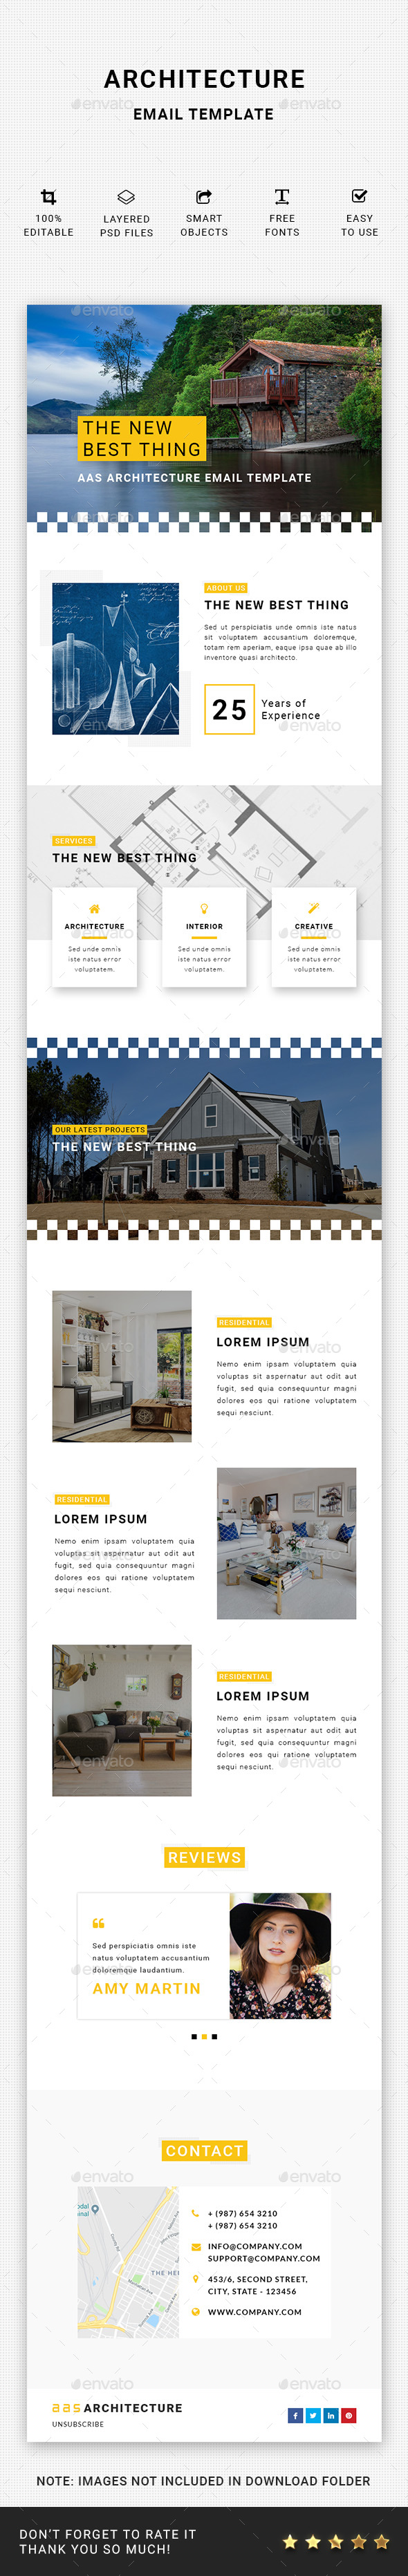 Architecture Email Template - E-newsletters Web Elements